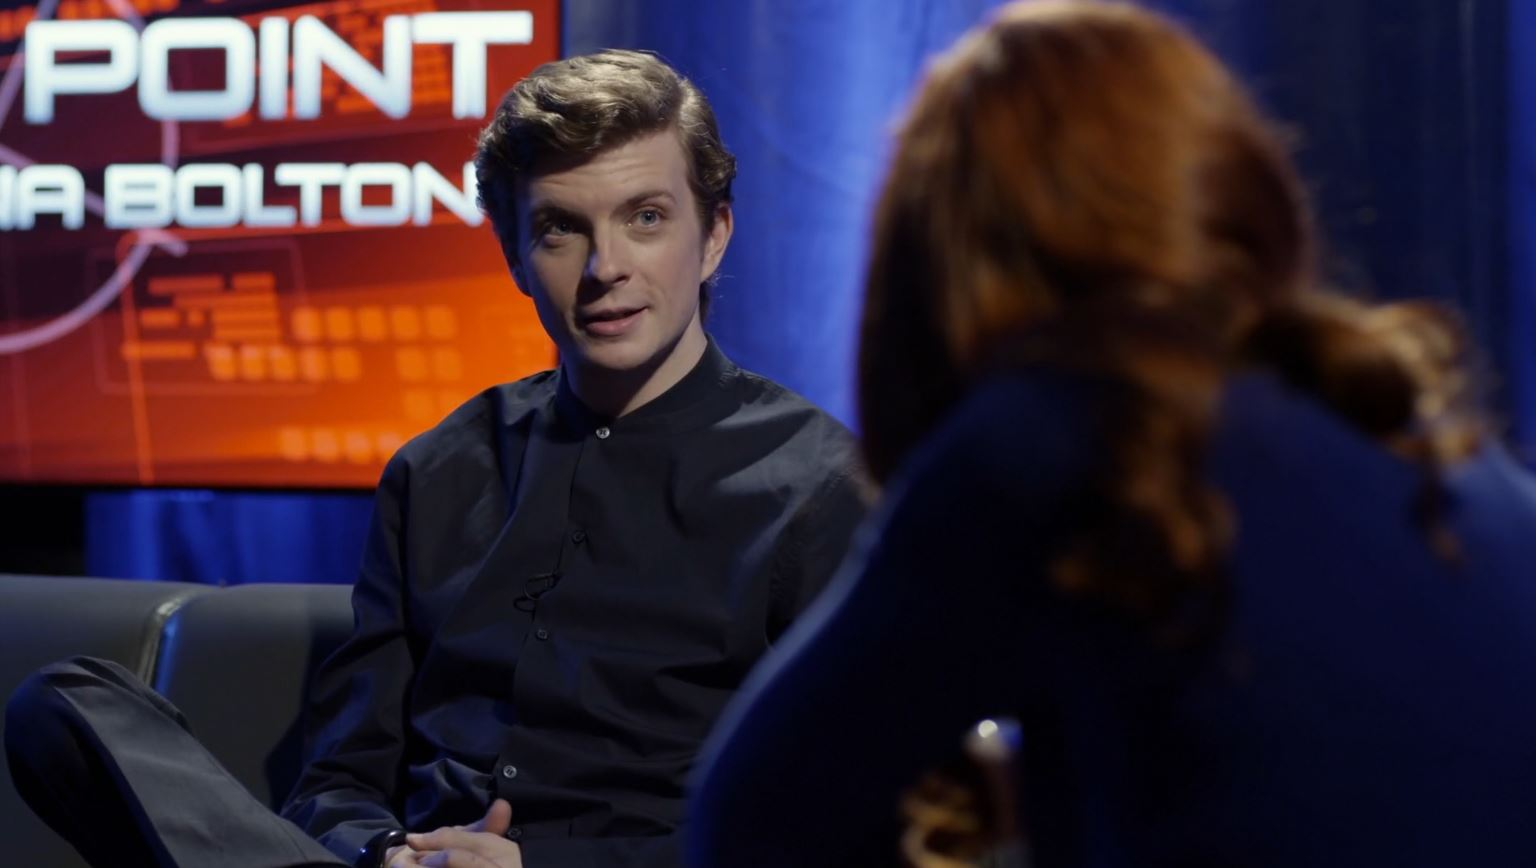 Continuum Season 3 Finale Last Minute Review - Erik Knudsen as Alec Sadler